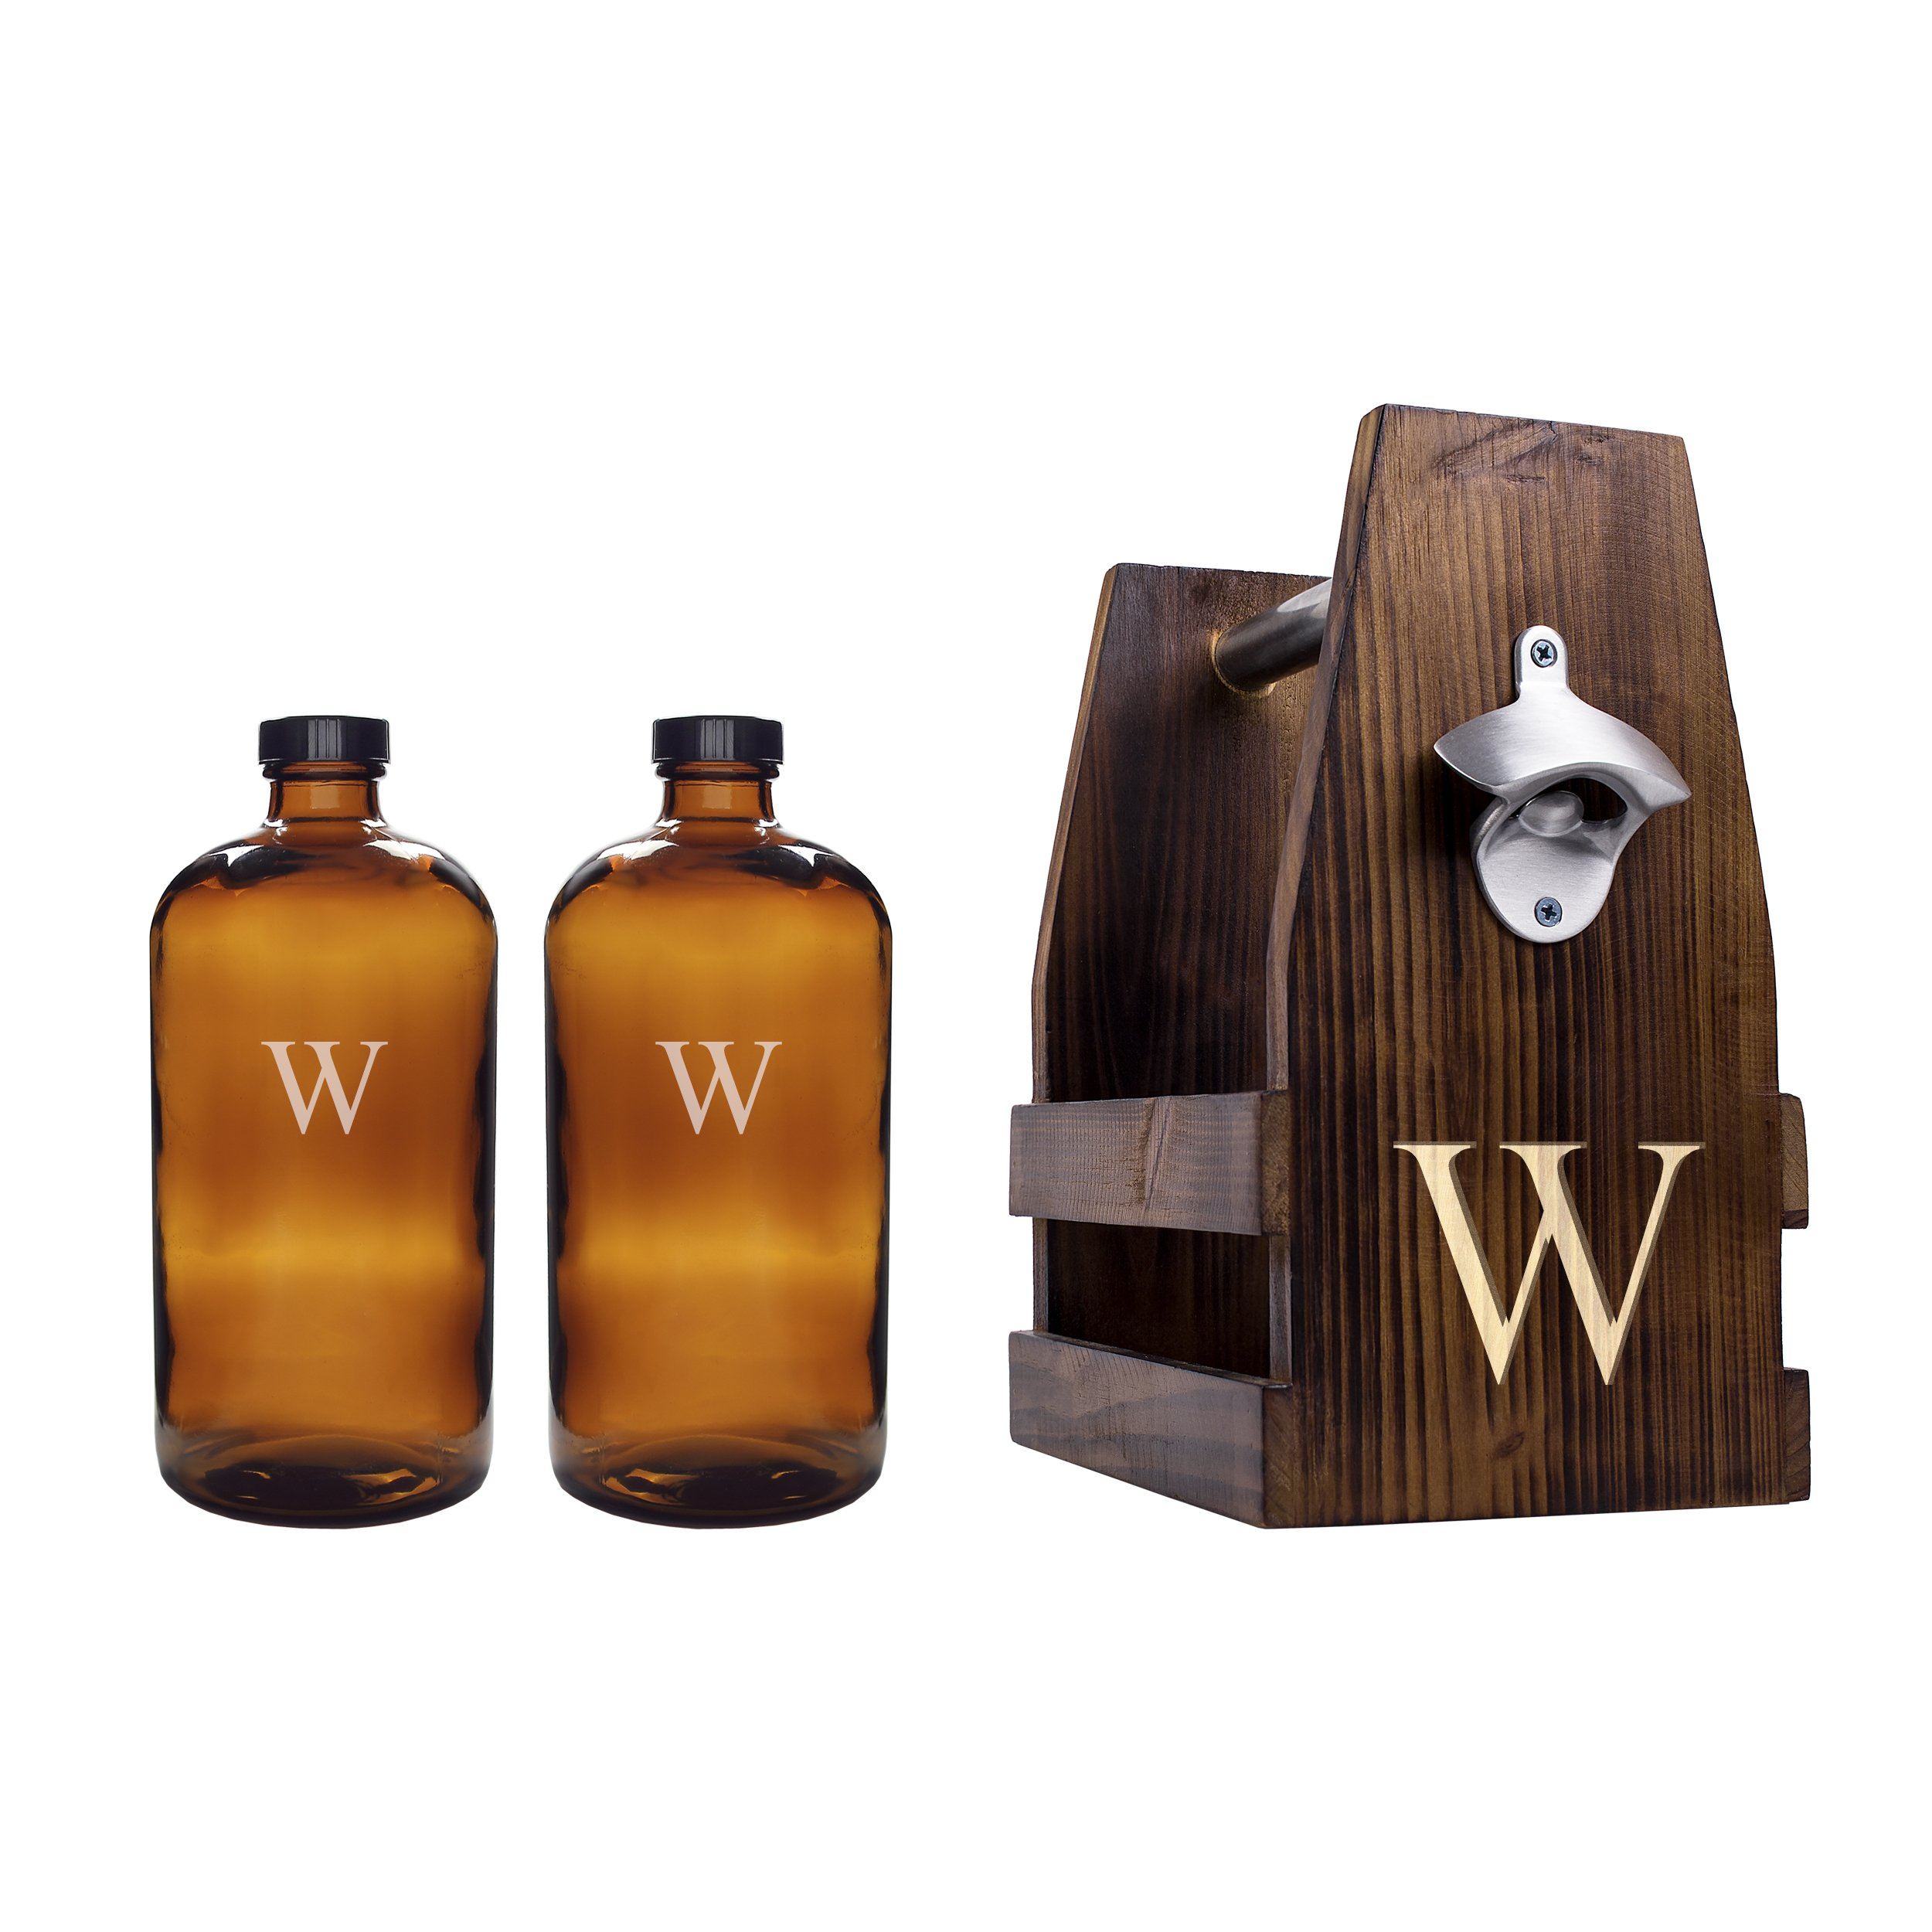 Cathy's Concepts Personalized Rustic Craft Beer Carrier with Two Bullet Growlers, Letter W